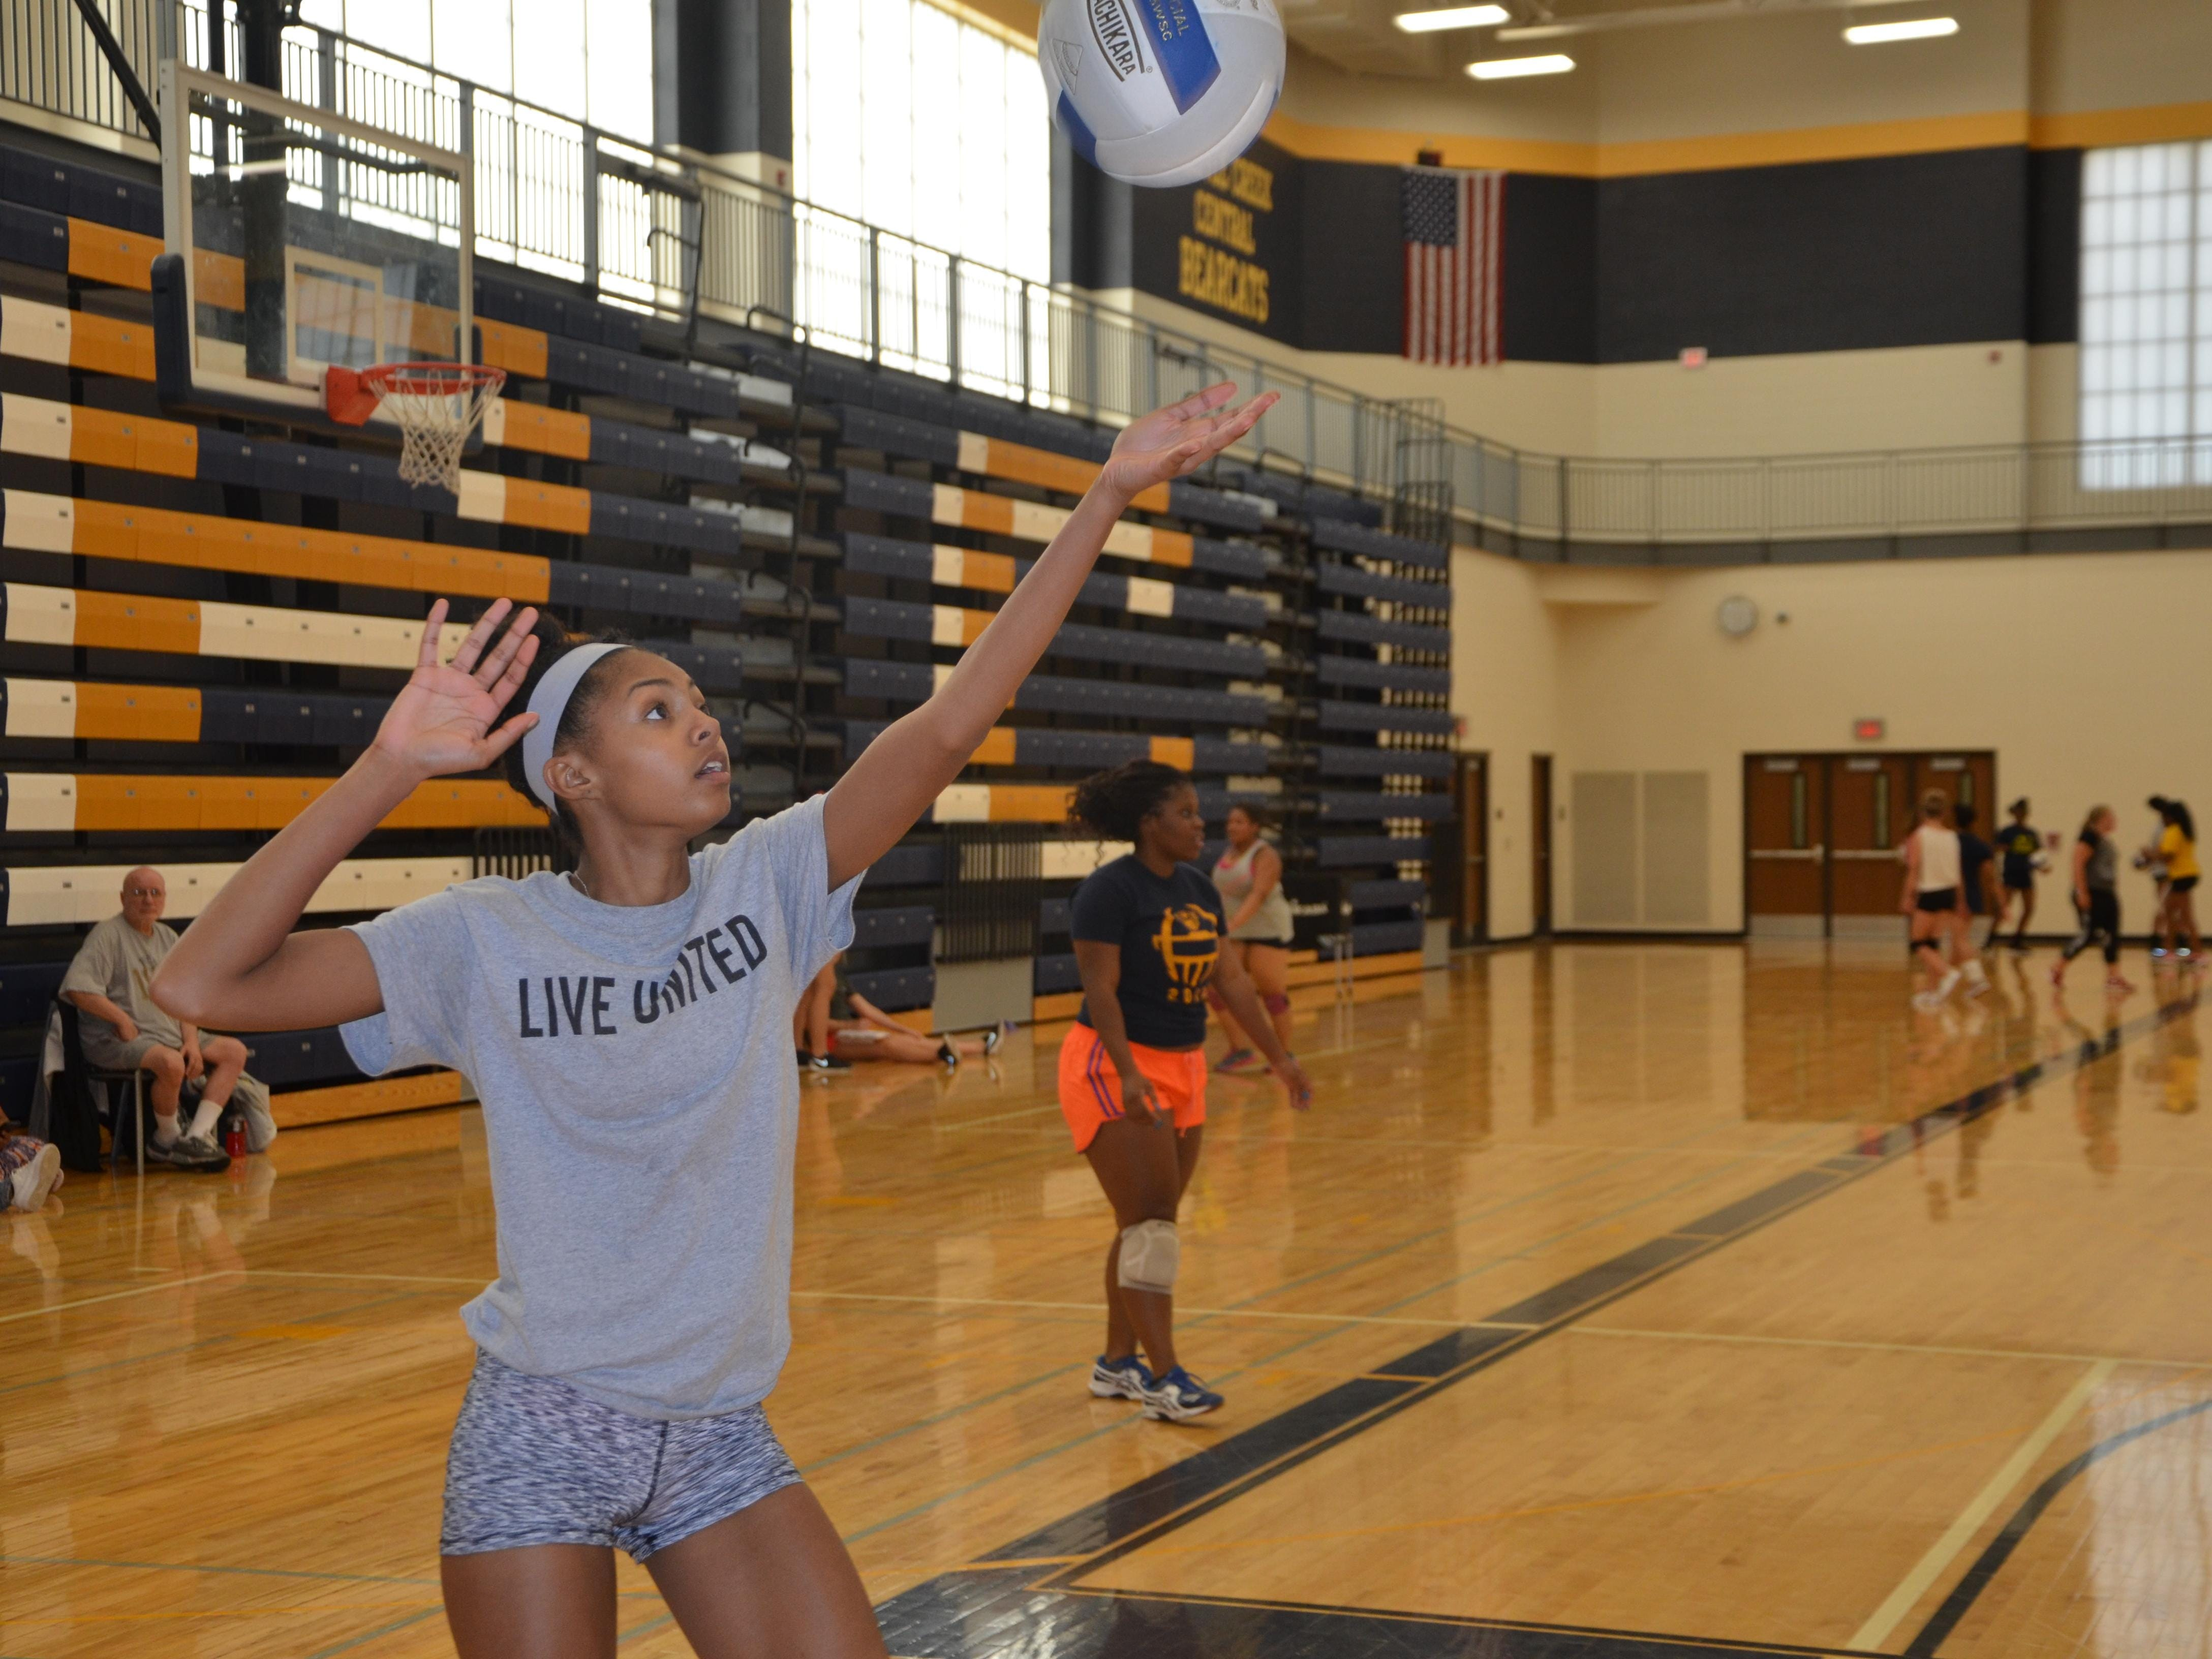 Battle Creek Central's Aaliyah Hill serves the ball for a drill during the first volleyball practice of the season on Wednesday.